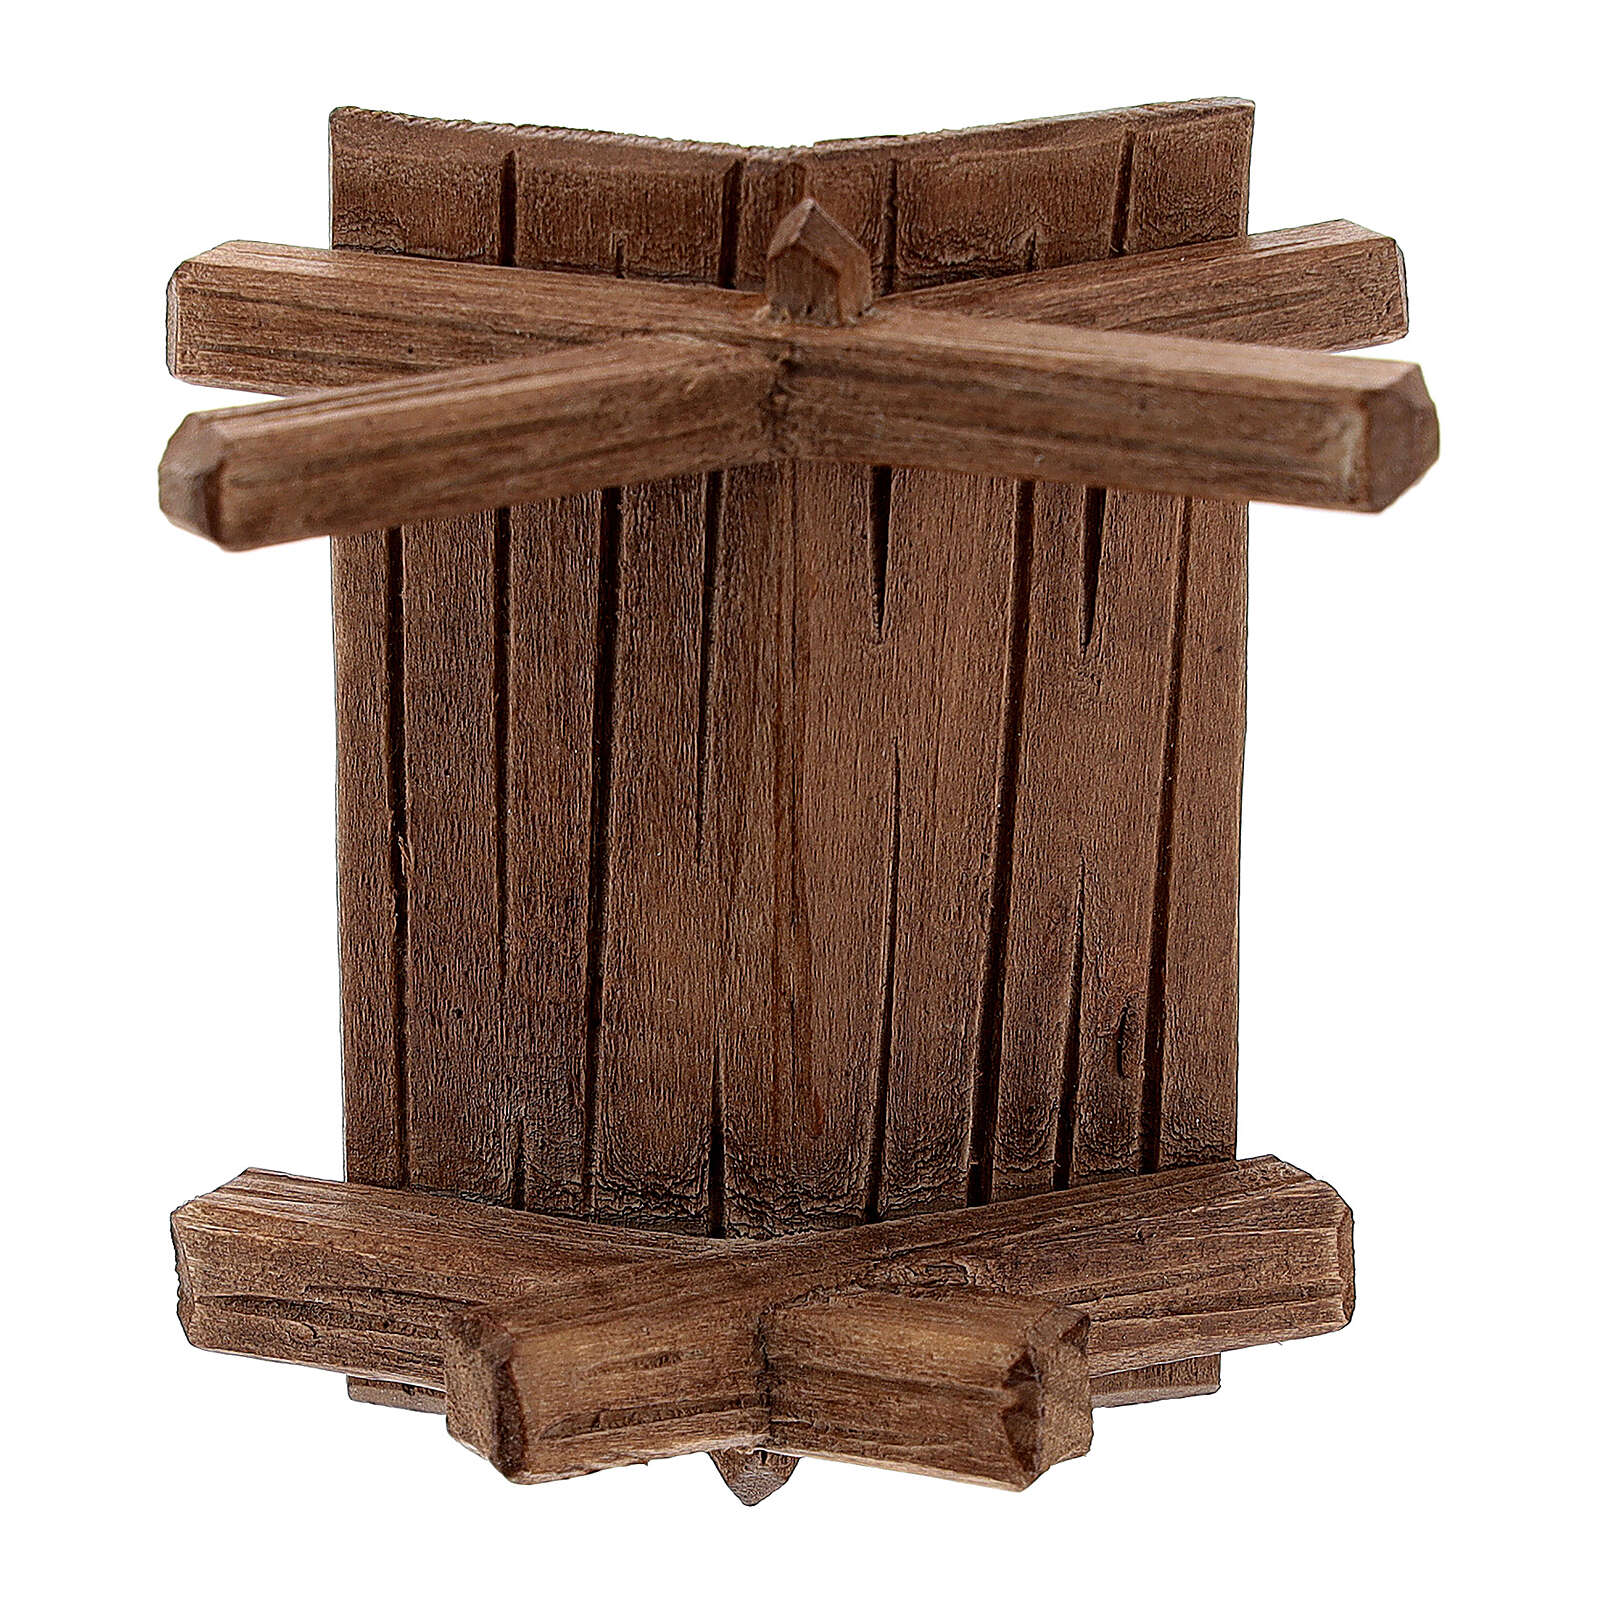 Simple manger in painted wood for 11 cm Rainell Nativity scene, Val Gardena 4